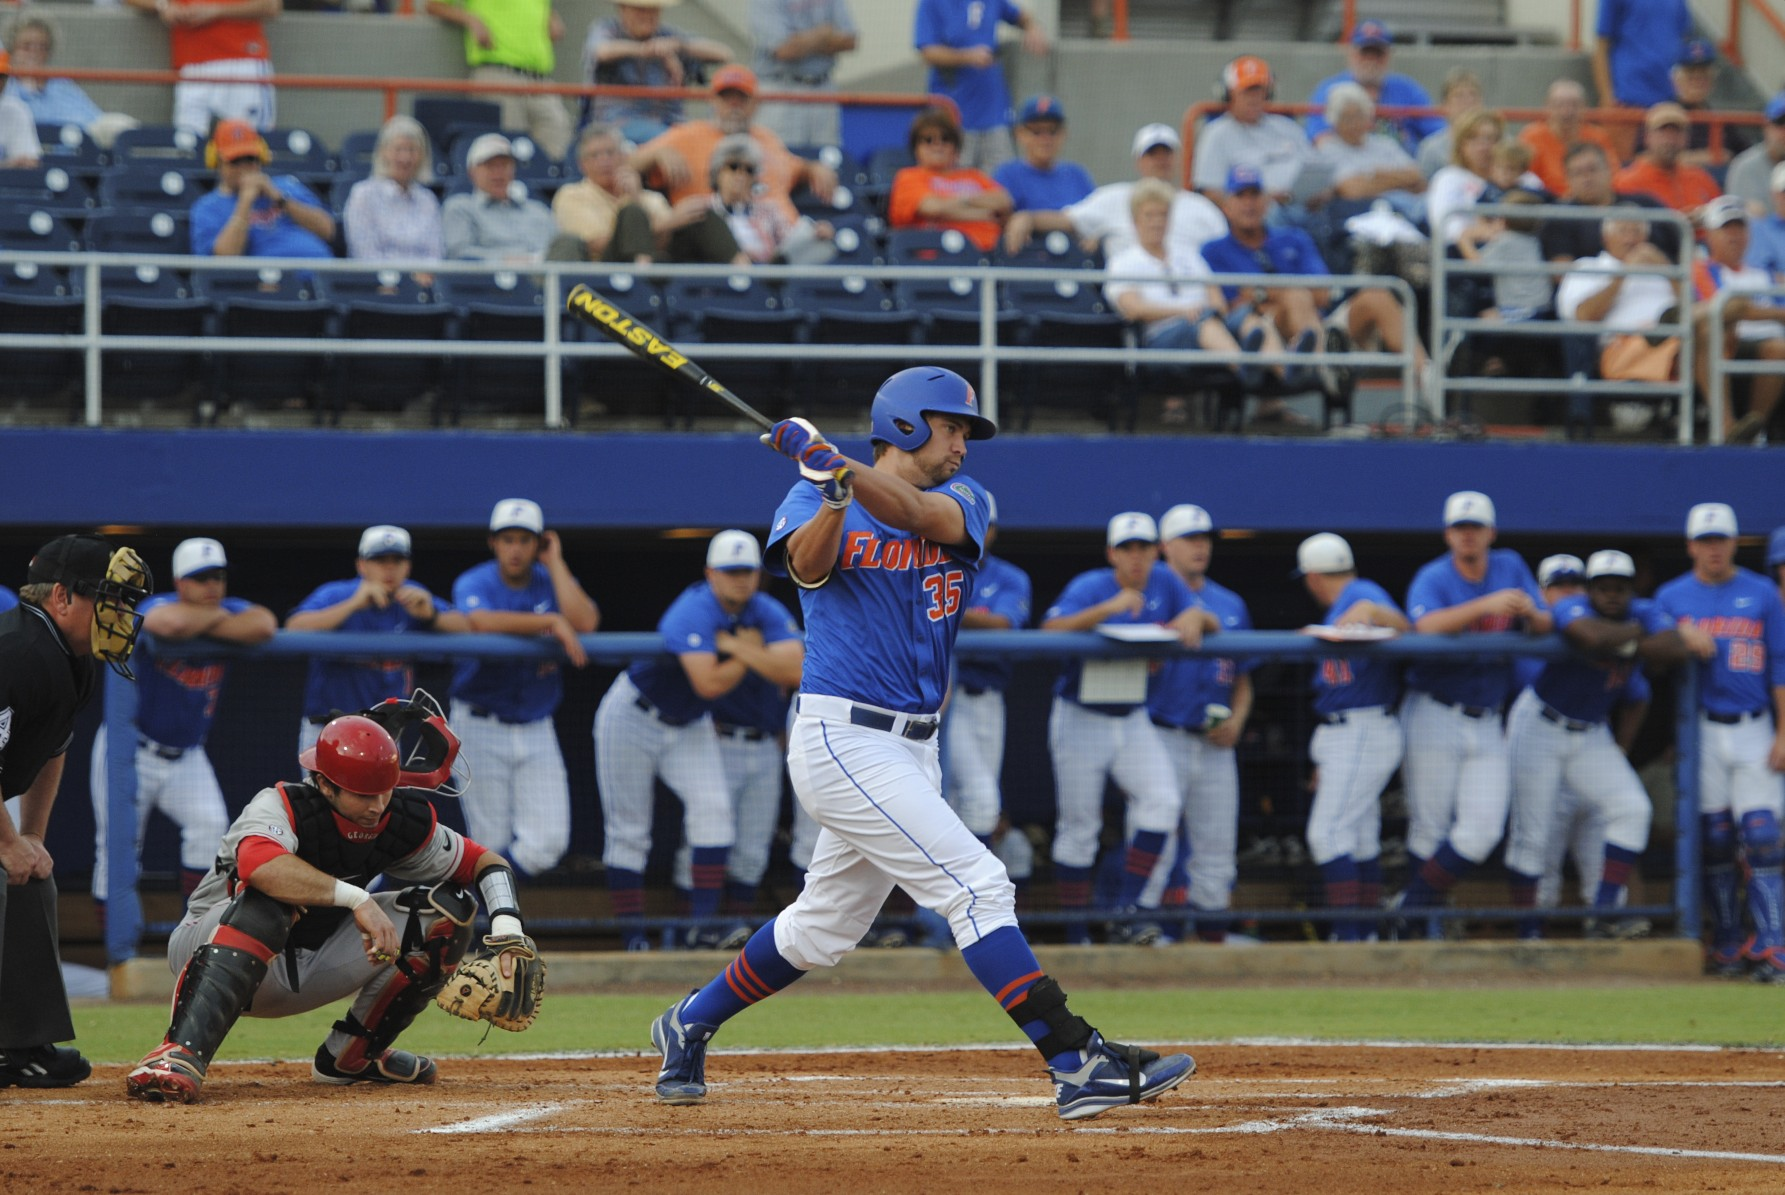 Junior Brian Johnson steps up to bat for the Gators.